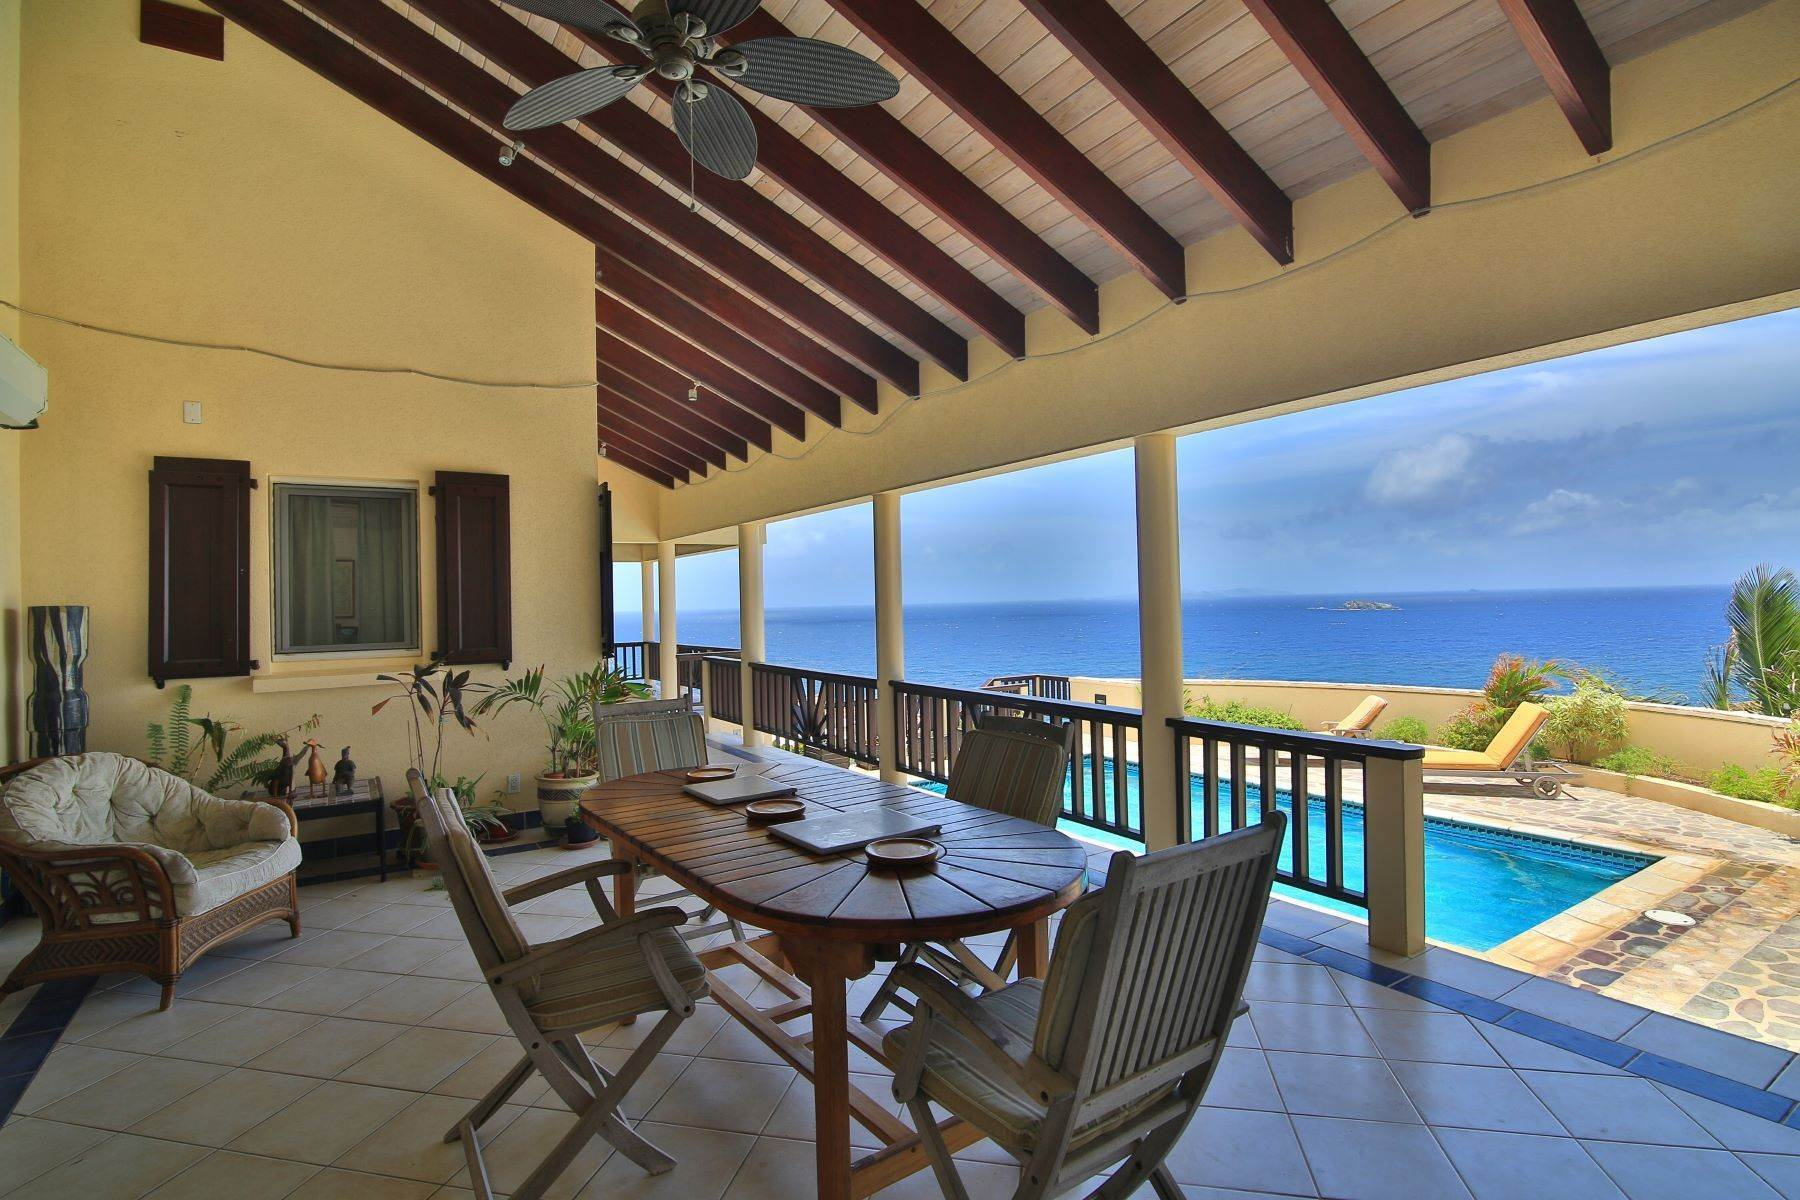 4. Single Family Homes for Sale at Sea Jade Tamarind Hill, St. Maarten